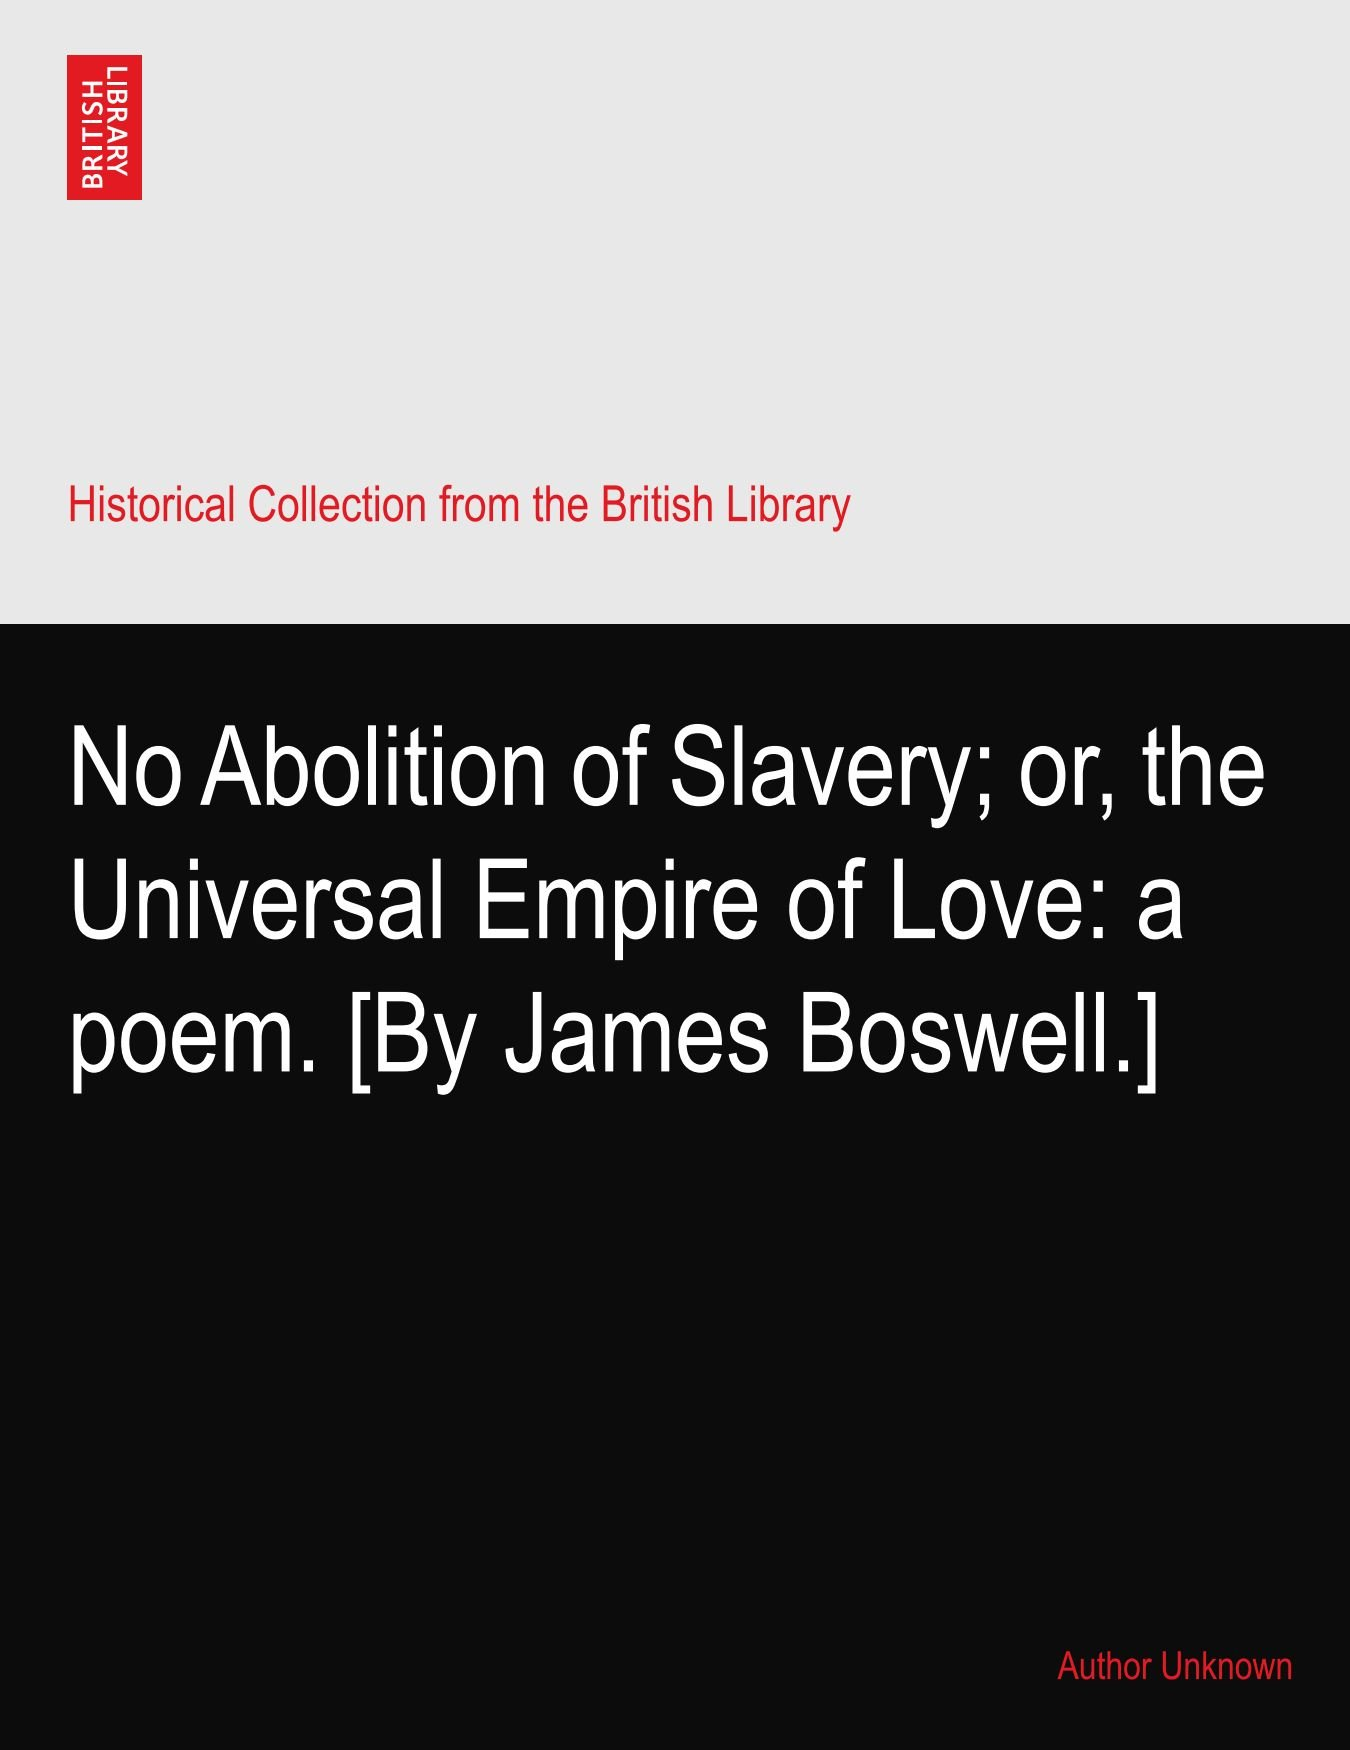 No Abolition of Slavery; or, the Universal Empire of Love: a poem. [By James Boswell.] pdf